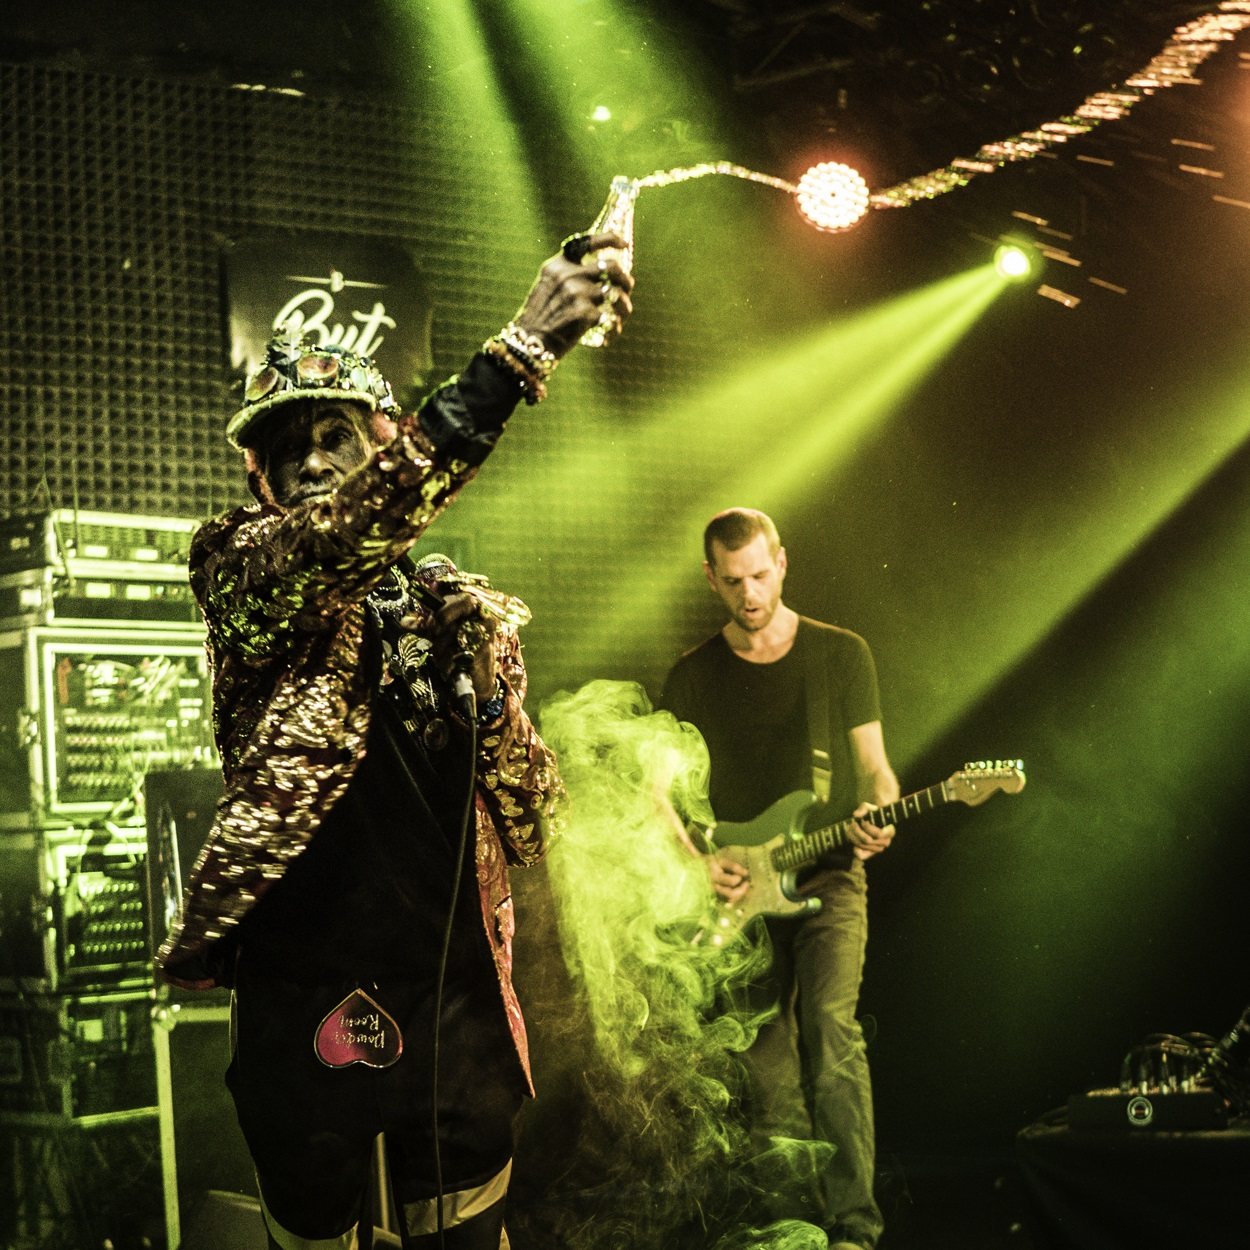 LIVE/190404-lee-scratch-perry-but-madrid-review/190404-lee-scratch-perry-water.jpg